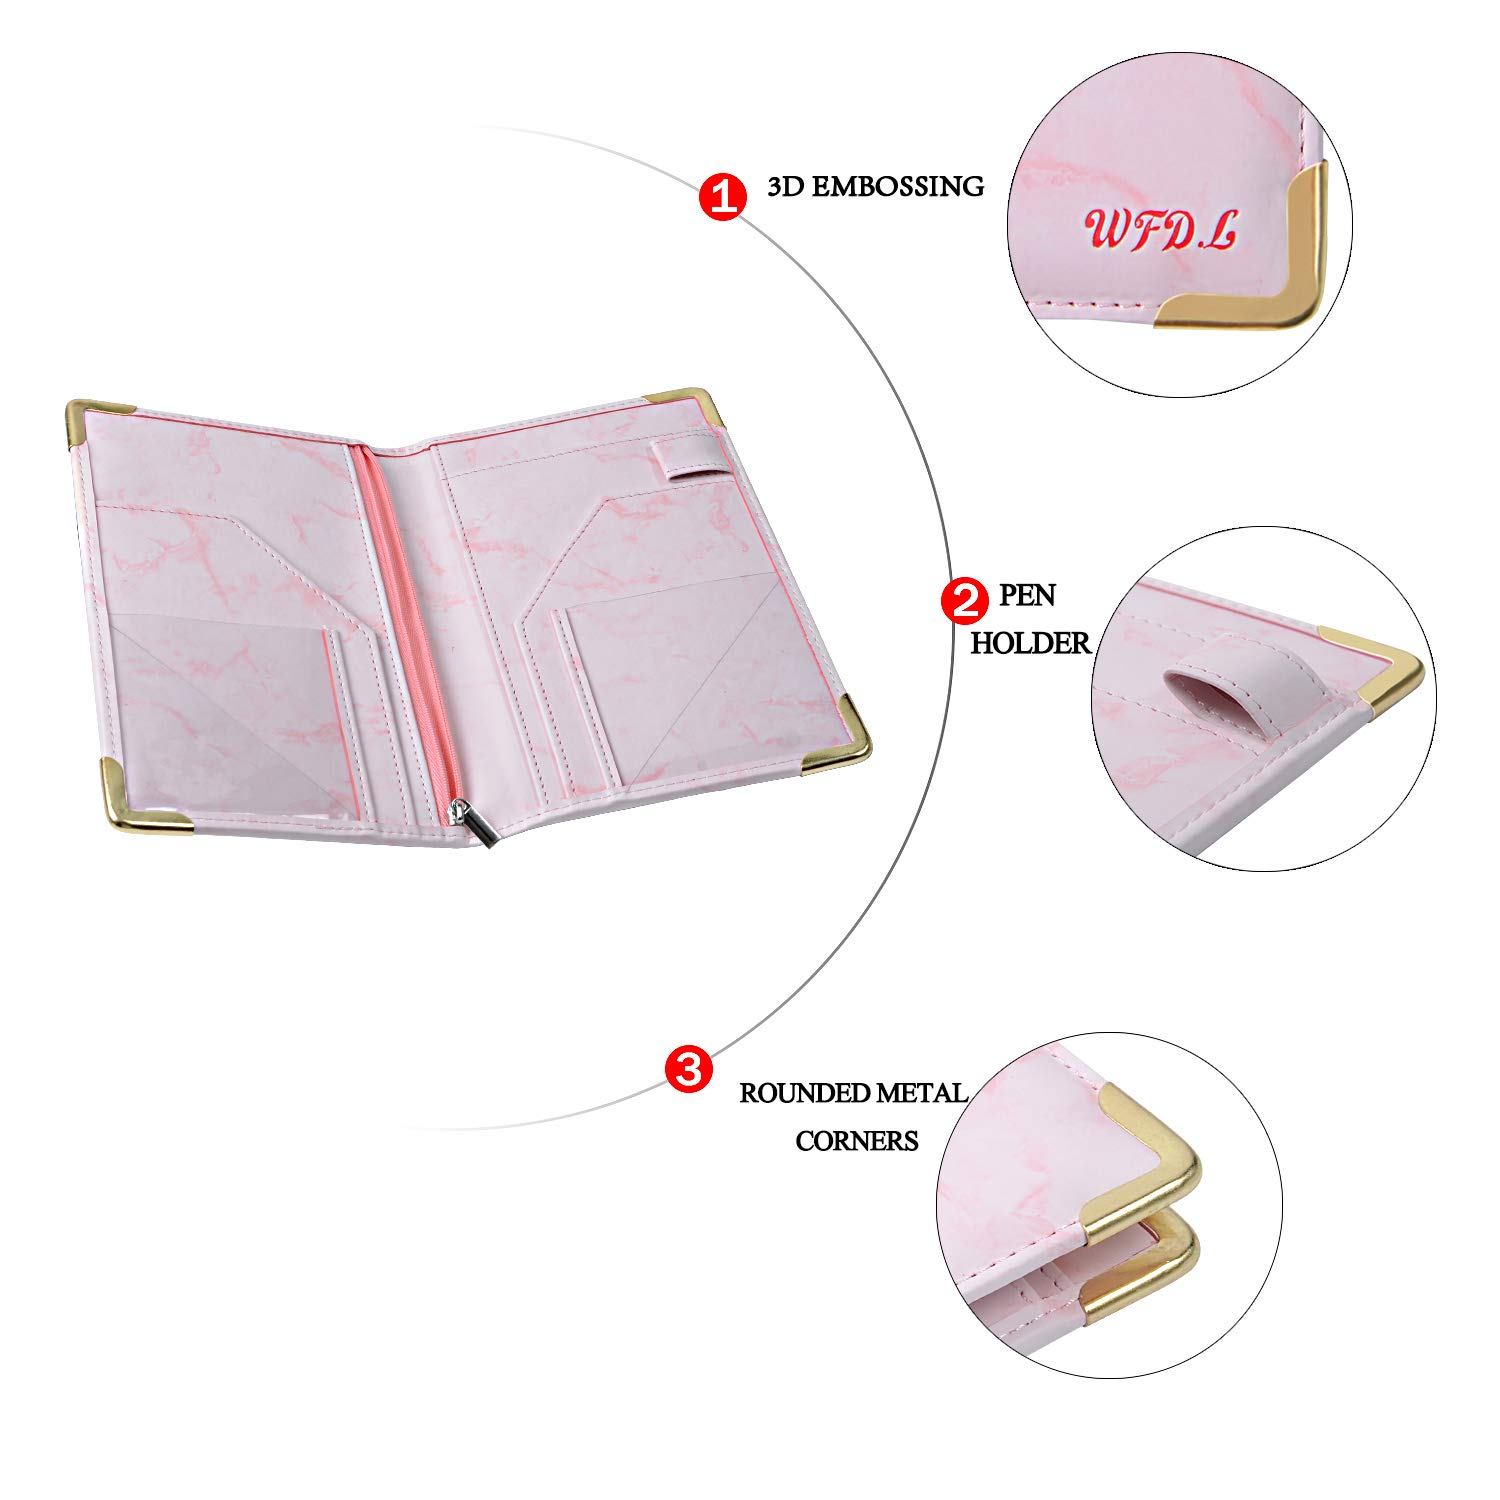 WFD.L Waitress Book Deluxe Server Wallet for Restaurant Waiter Waitress Waitstaff | 9 Pockets Includes Zipper Pocket with Pen Holder | Fits in Apron+Includ 50 Sheet Guest Check Pads (Marble Pink) by WFD.L (Image #2)